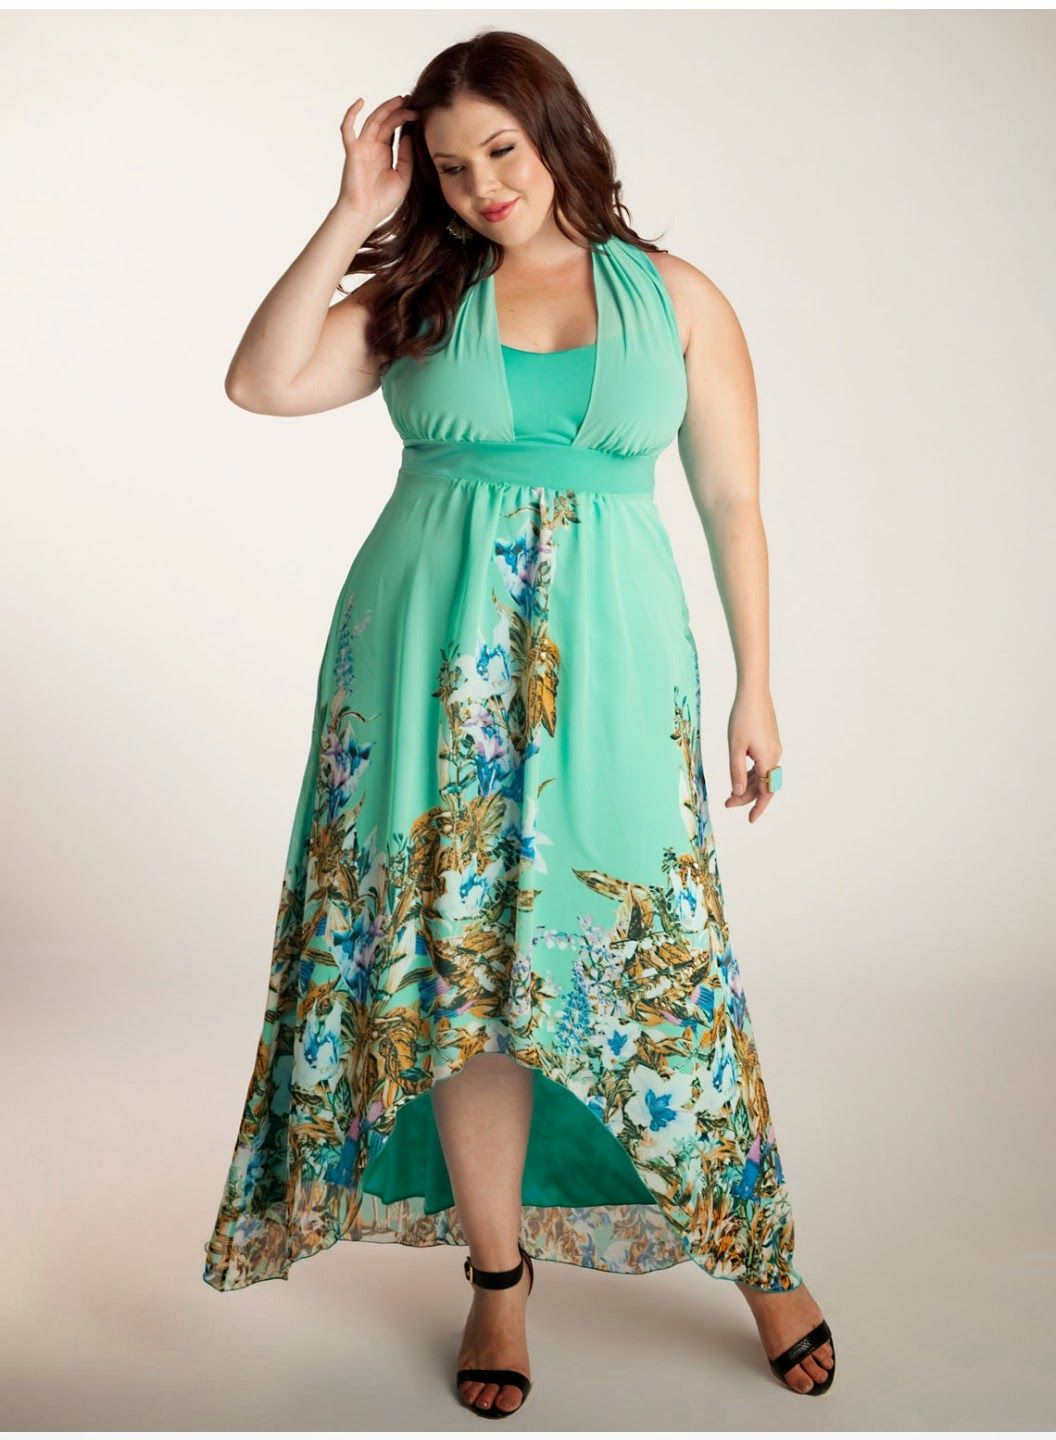 Plus Size Clothing For Spring You Are Guaranteed To Love Mint Maxi Dresses Plus Size Maxi Dresses Curvy Girl Fashion [ 1440 x 1056 Pixel ]